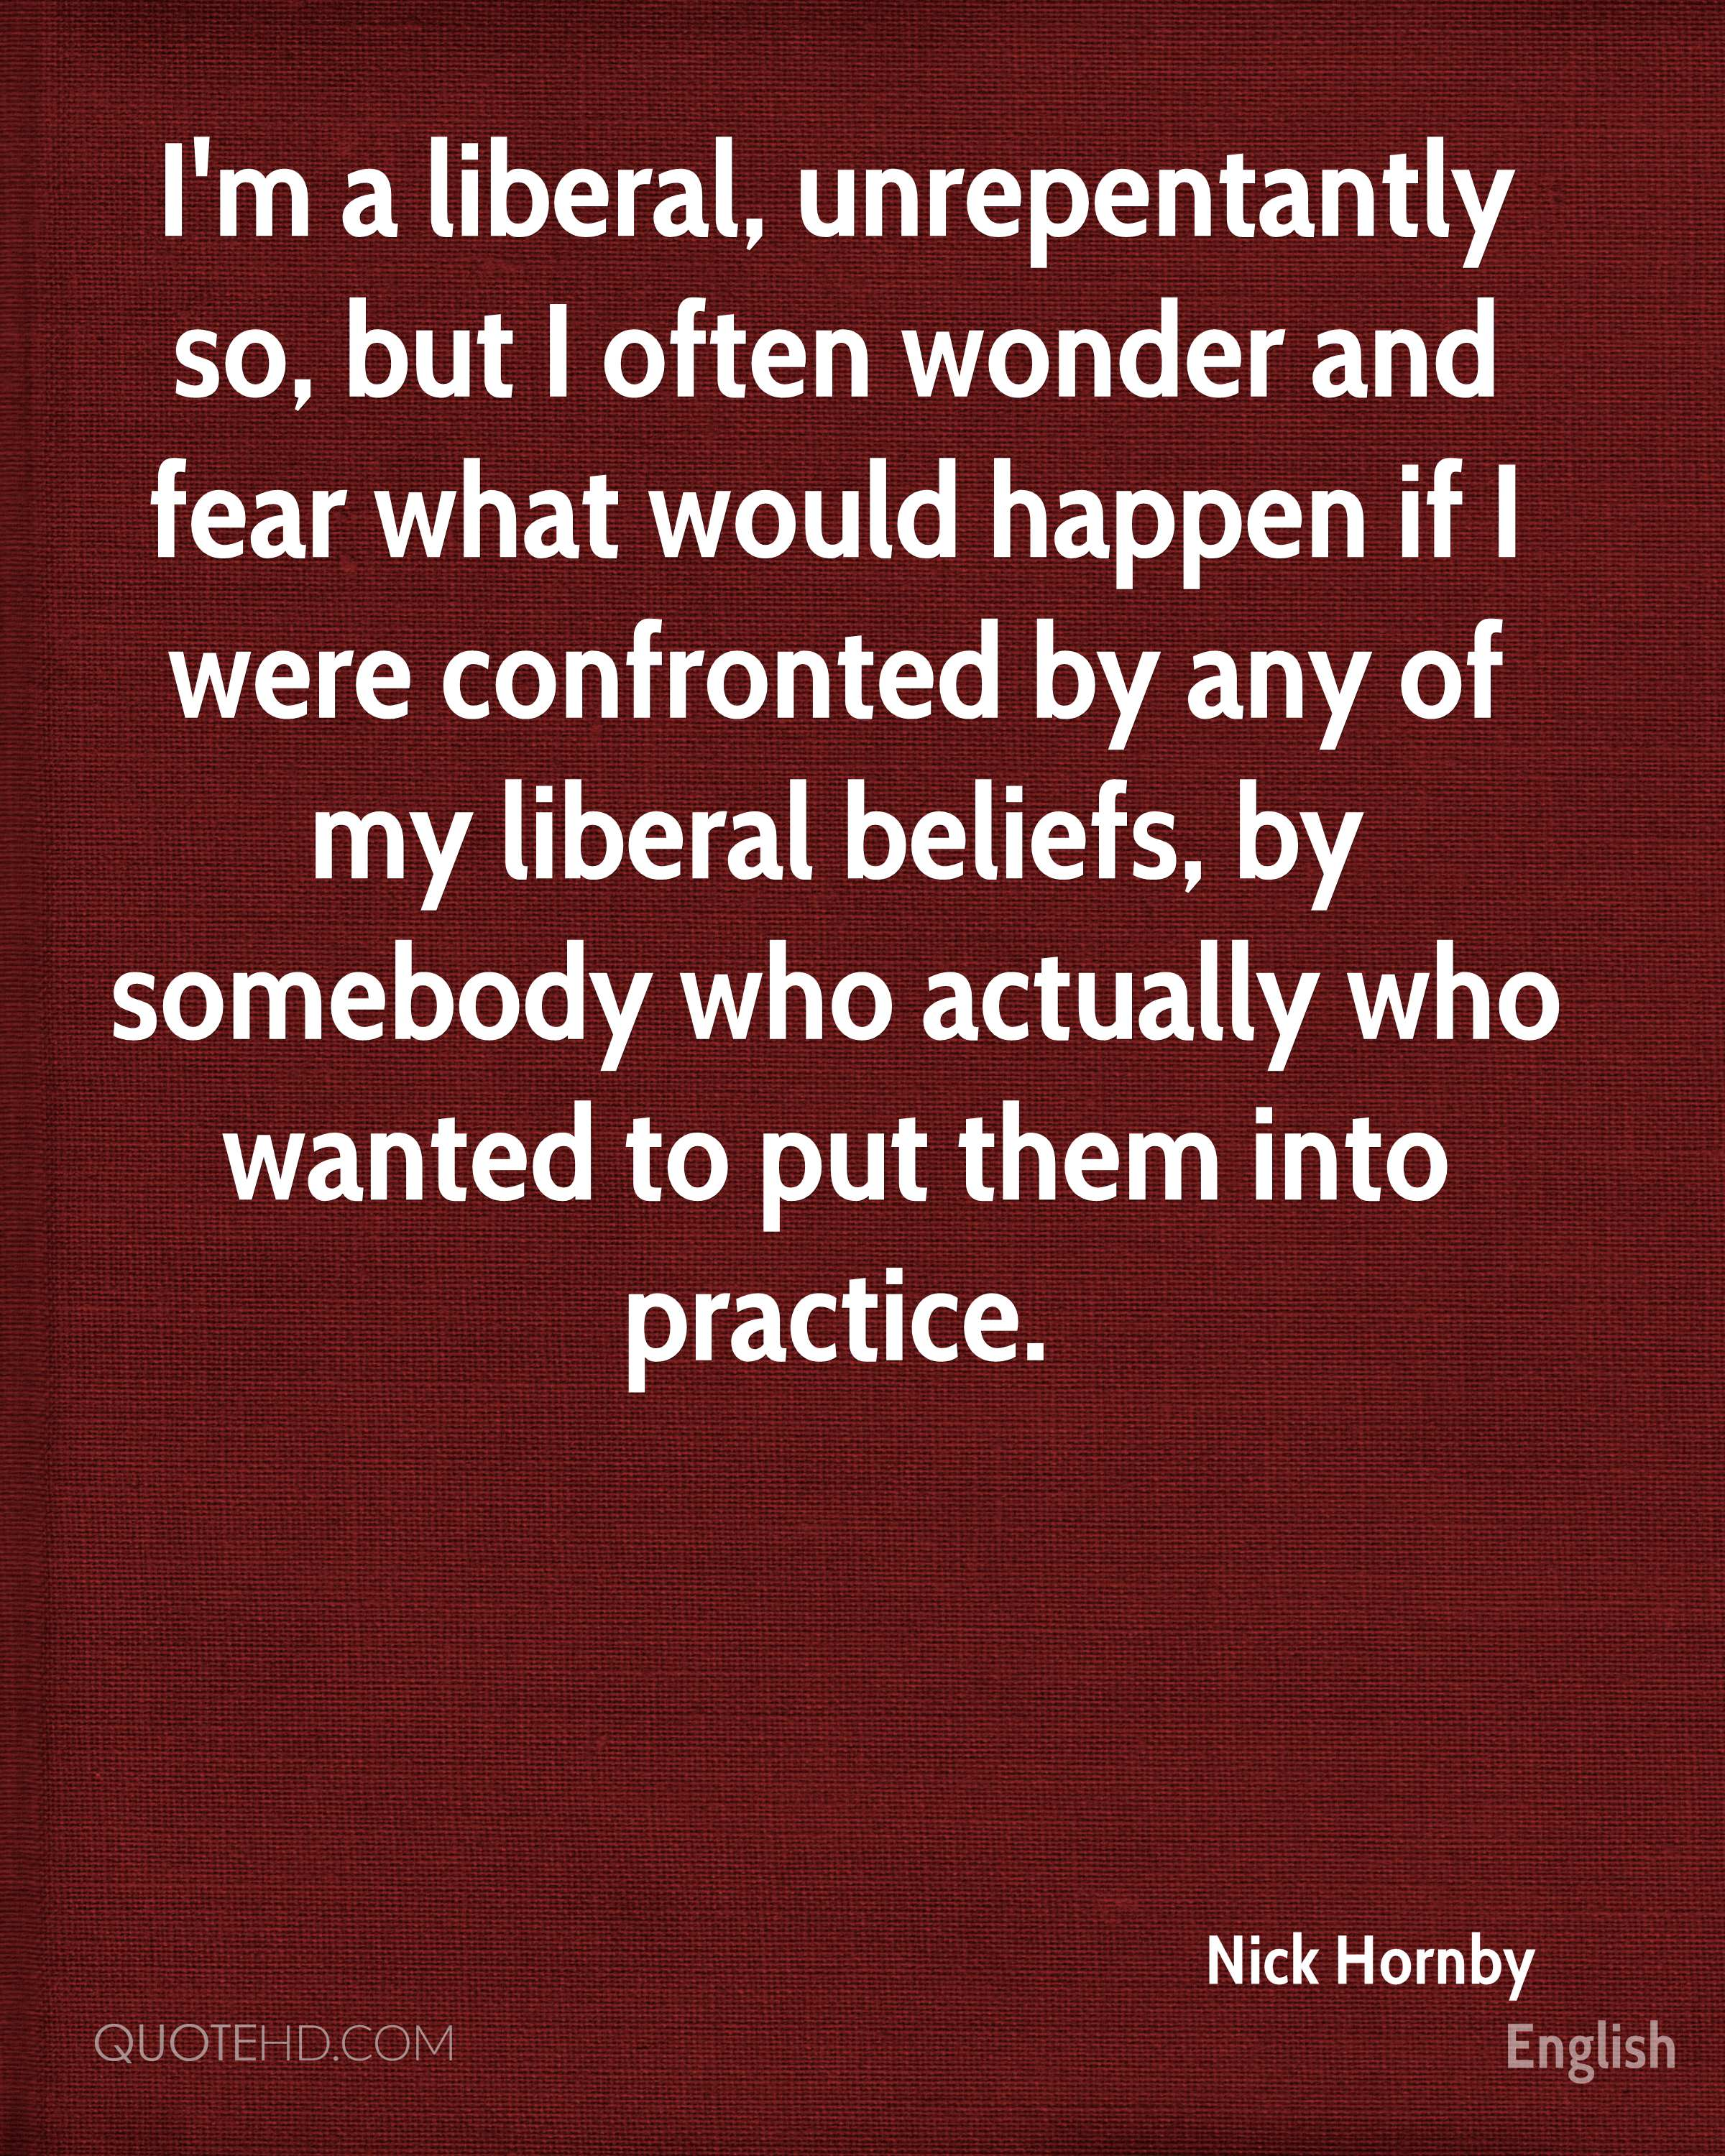 I'm a liberal, unrepentantly so, but I often wonder and fear what would happen if I were confronted by any of my liberal beliefs, by somebody who actually who wanted to put them into practice.